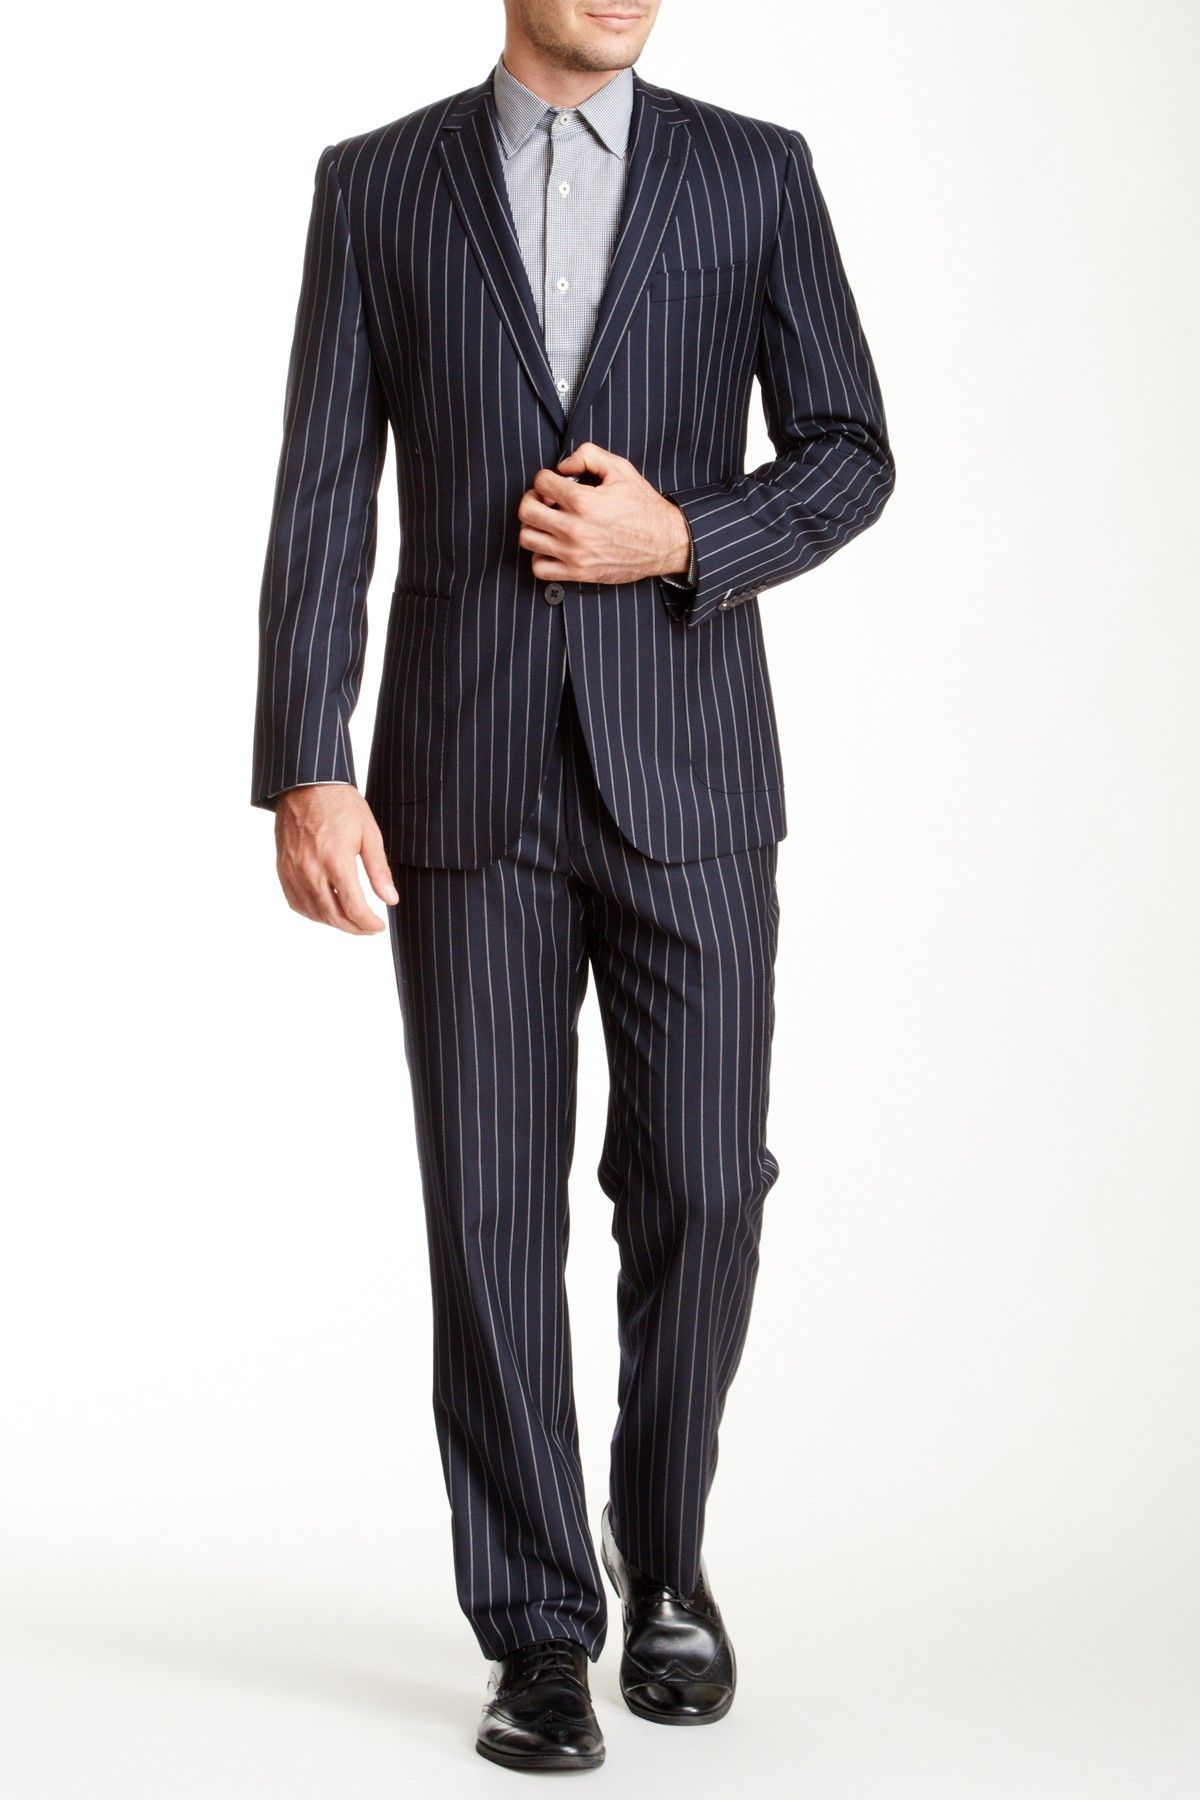 English Laundry Navy Pinstripe Two Button Notch Lapel Wool Suit By English Laundry On Hautelook Wool Suit Pinstripe Suiting [ 1800 x 1200 Pixel ]